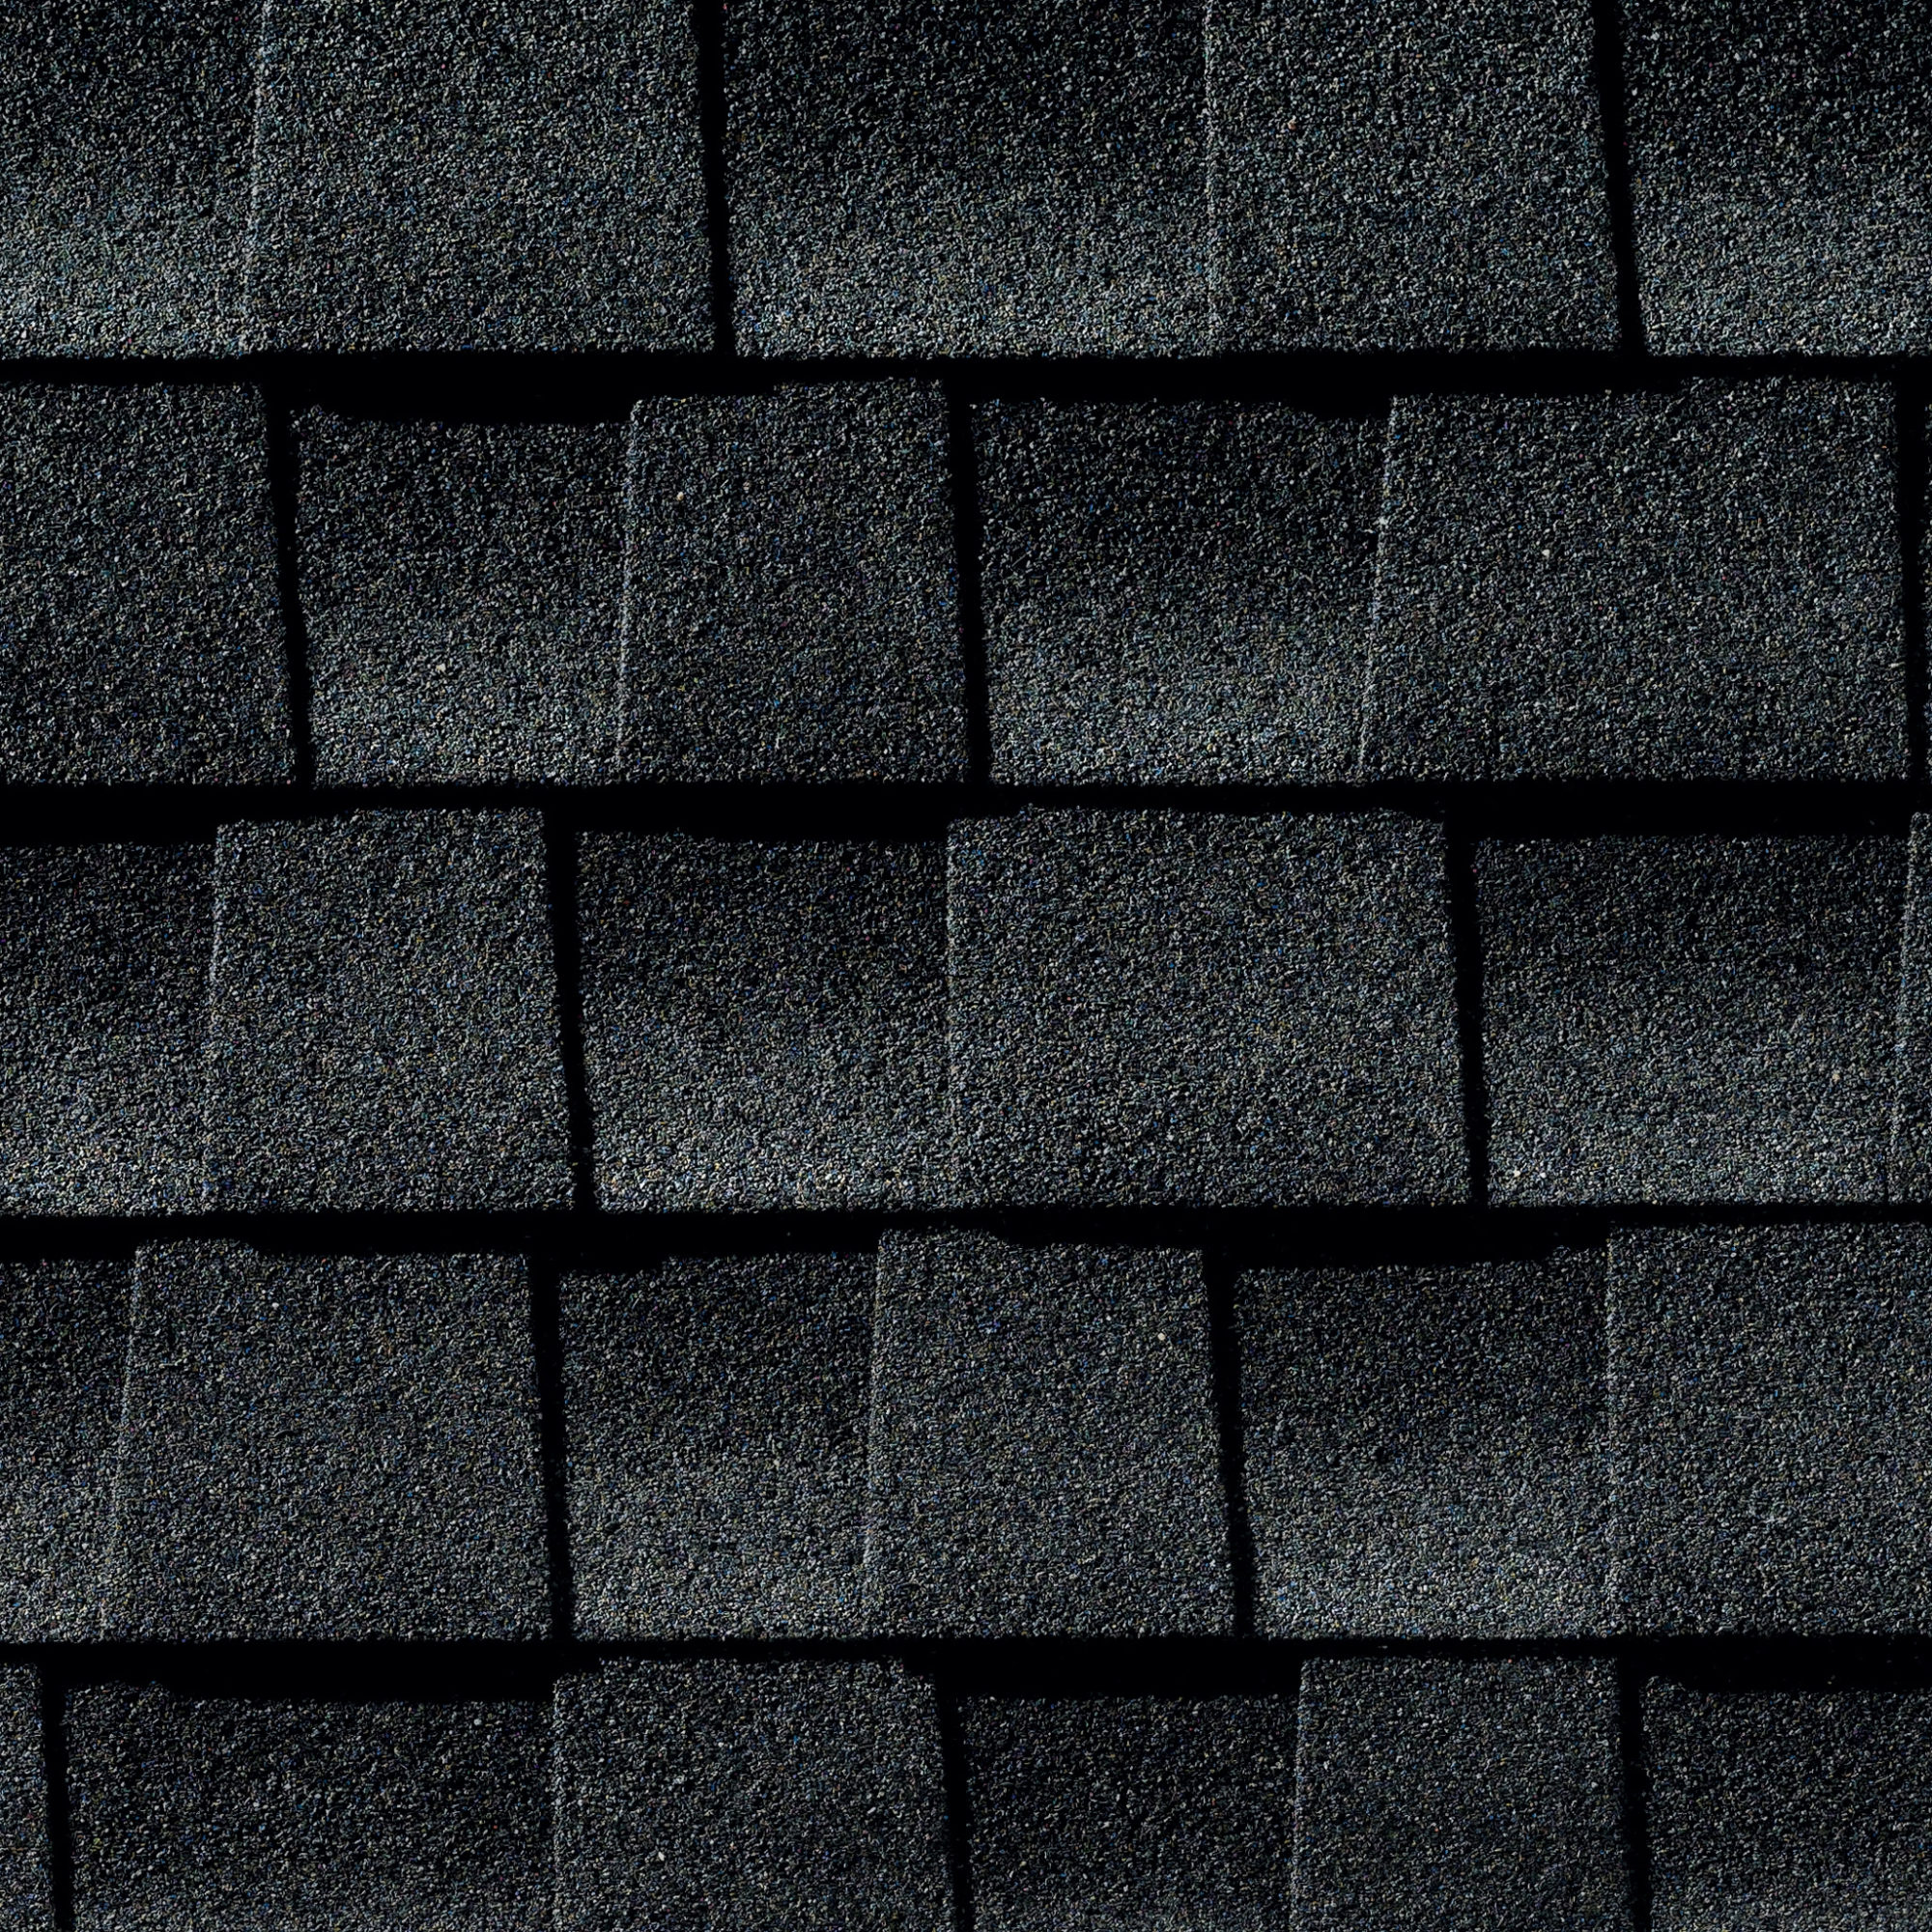 BDL GAF TIMBERLINE HD LTD LIFETM SHINGLE